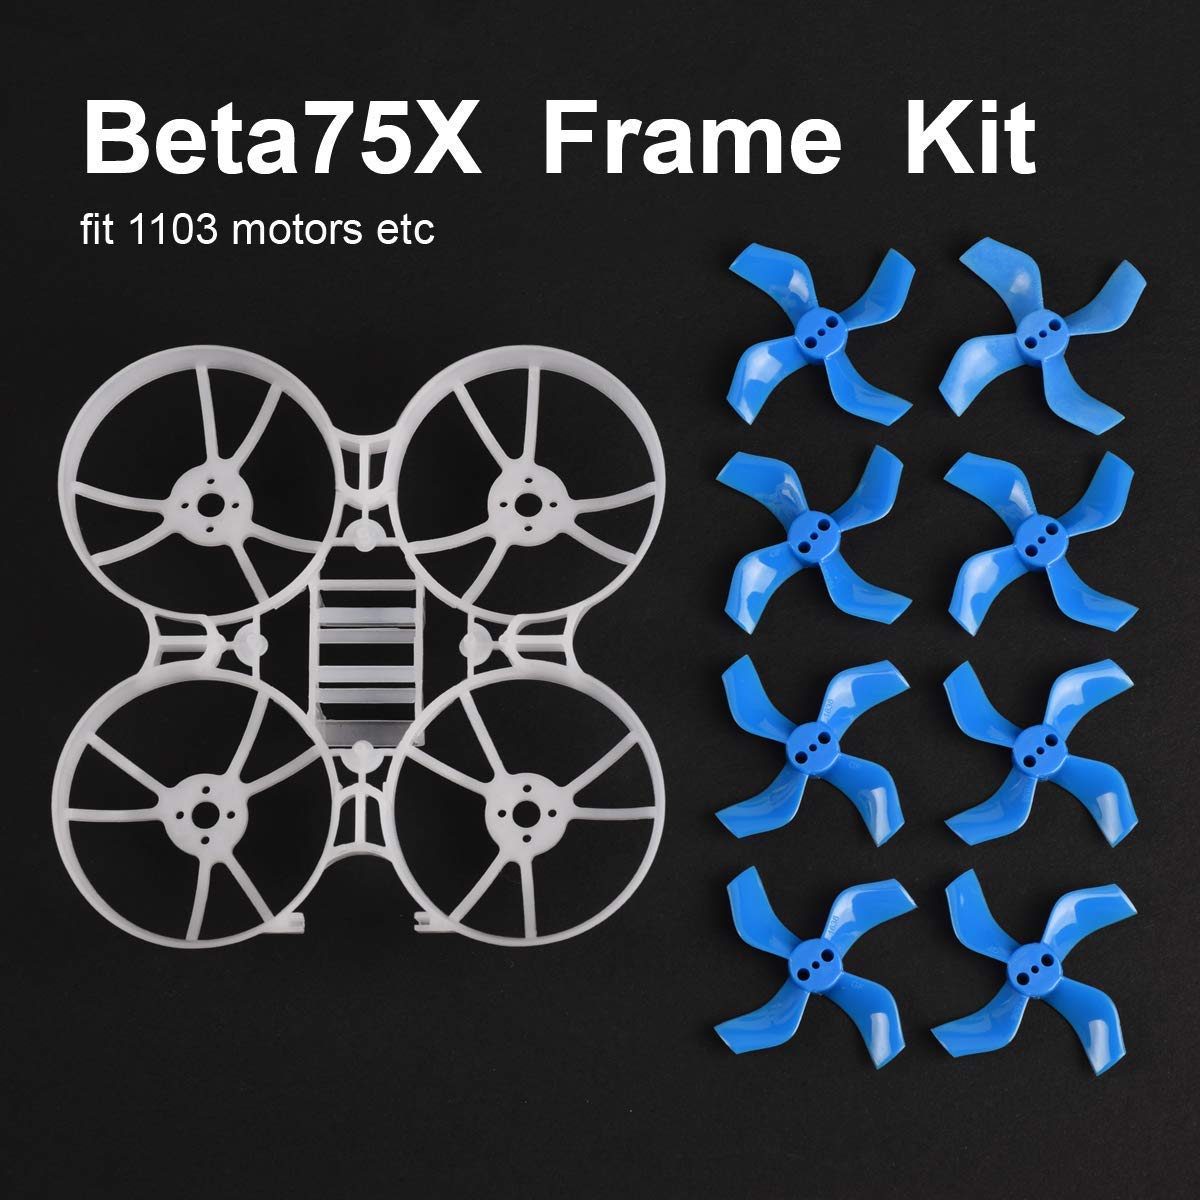 BETAFPV Beta65X 2S Whoop Frame Kit with 2 Sets 31mm 4-Blade Props 1.0mm Shaft Blue for 65mm 2S Whoop Drone like Beta65X BNF